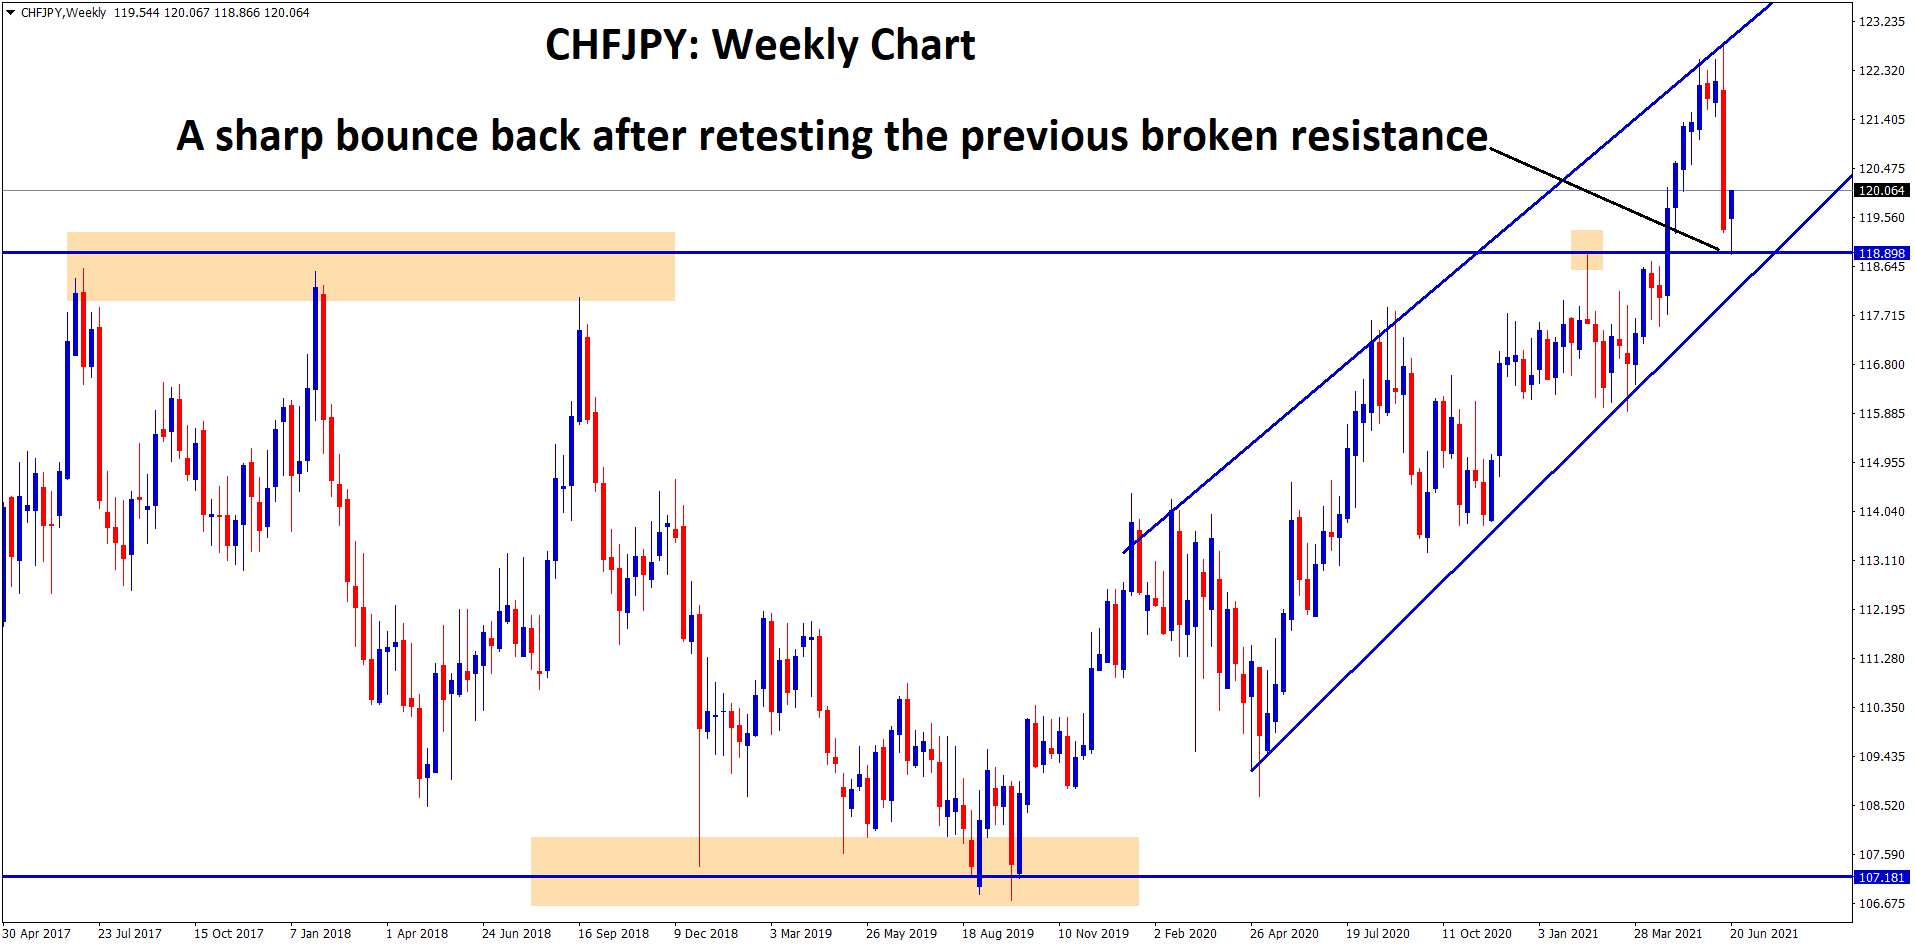 A sharp bounce back after retesting the previous broken resistance in chfjpy